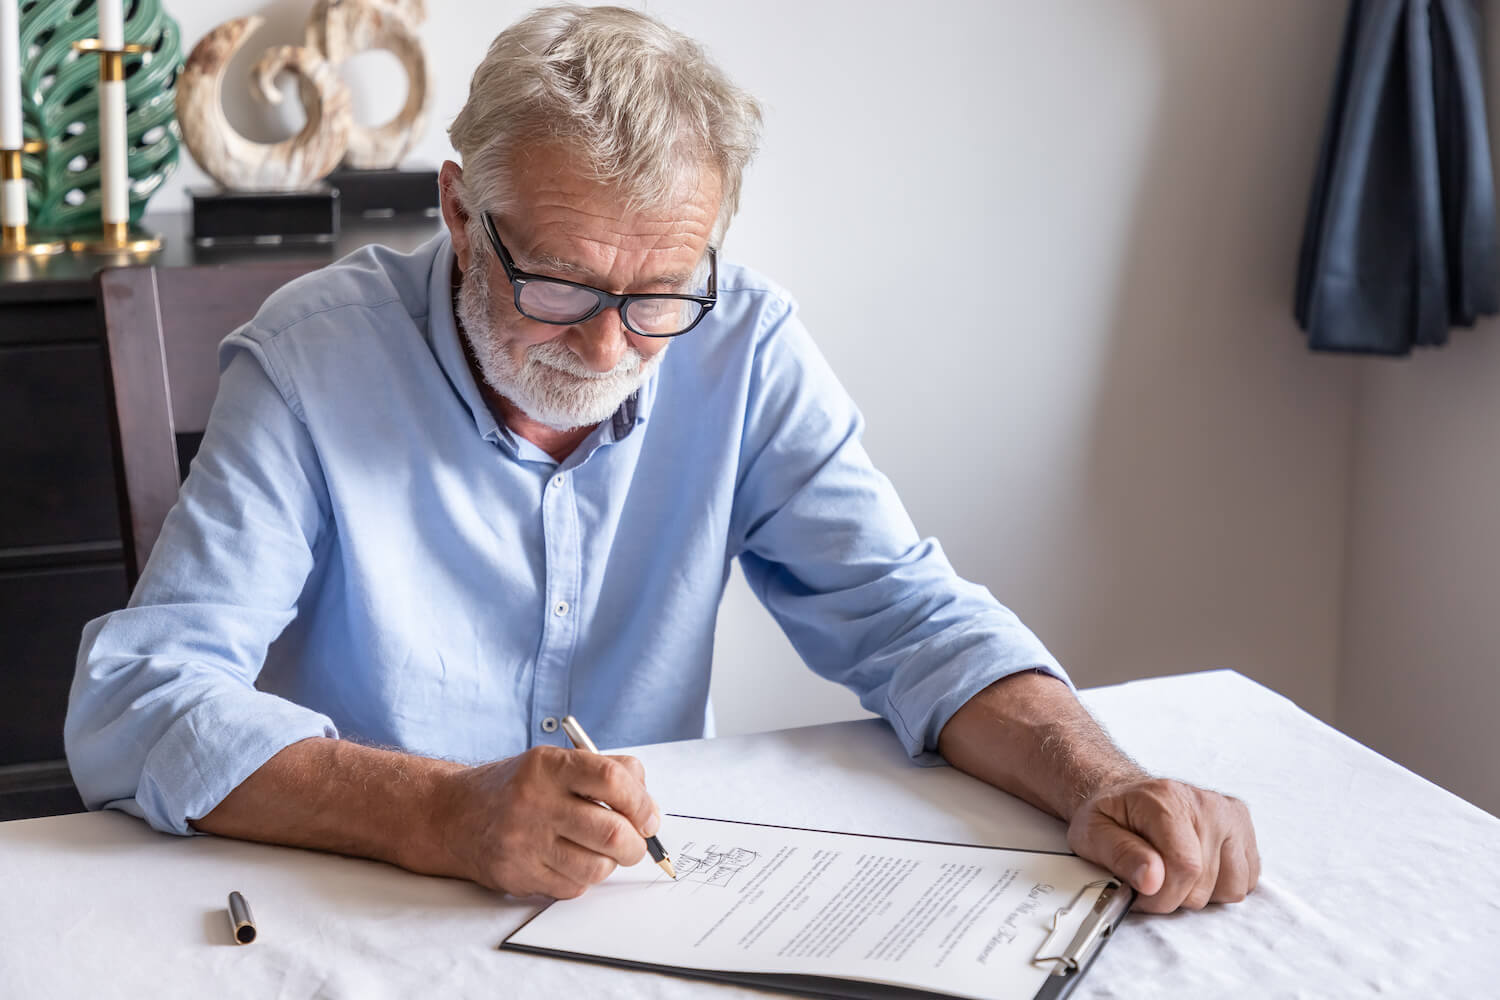 Elderly man with glasses signing a legal document